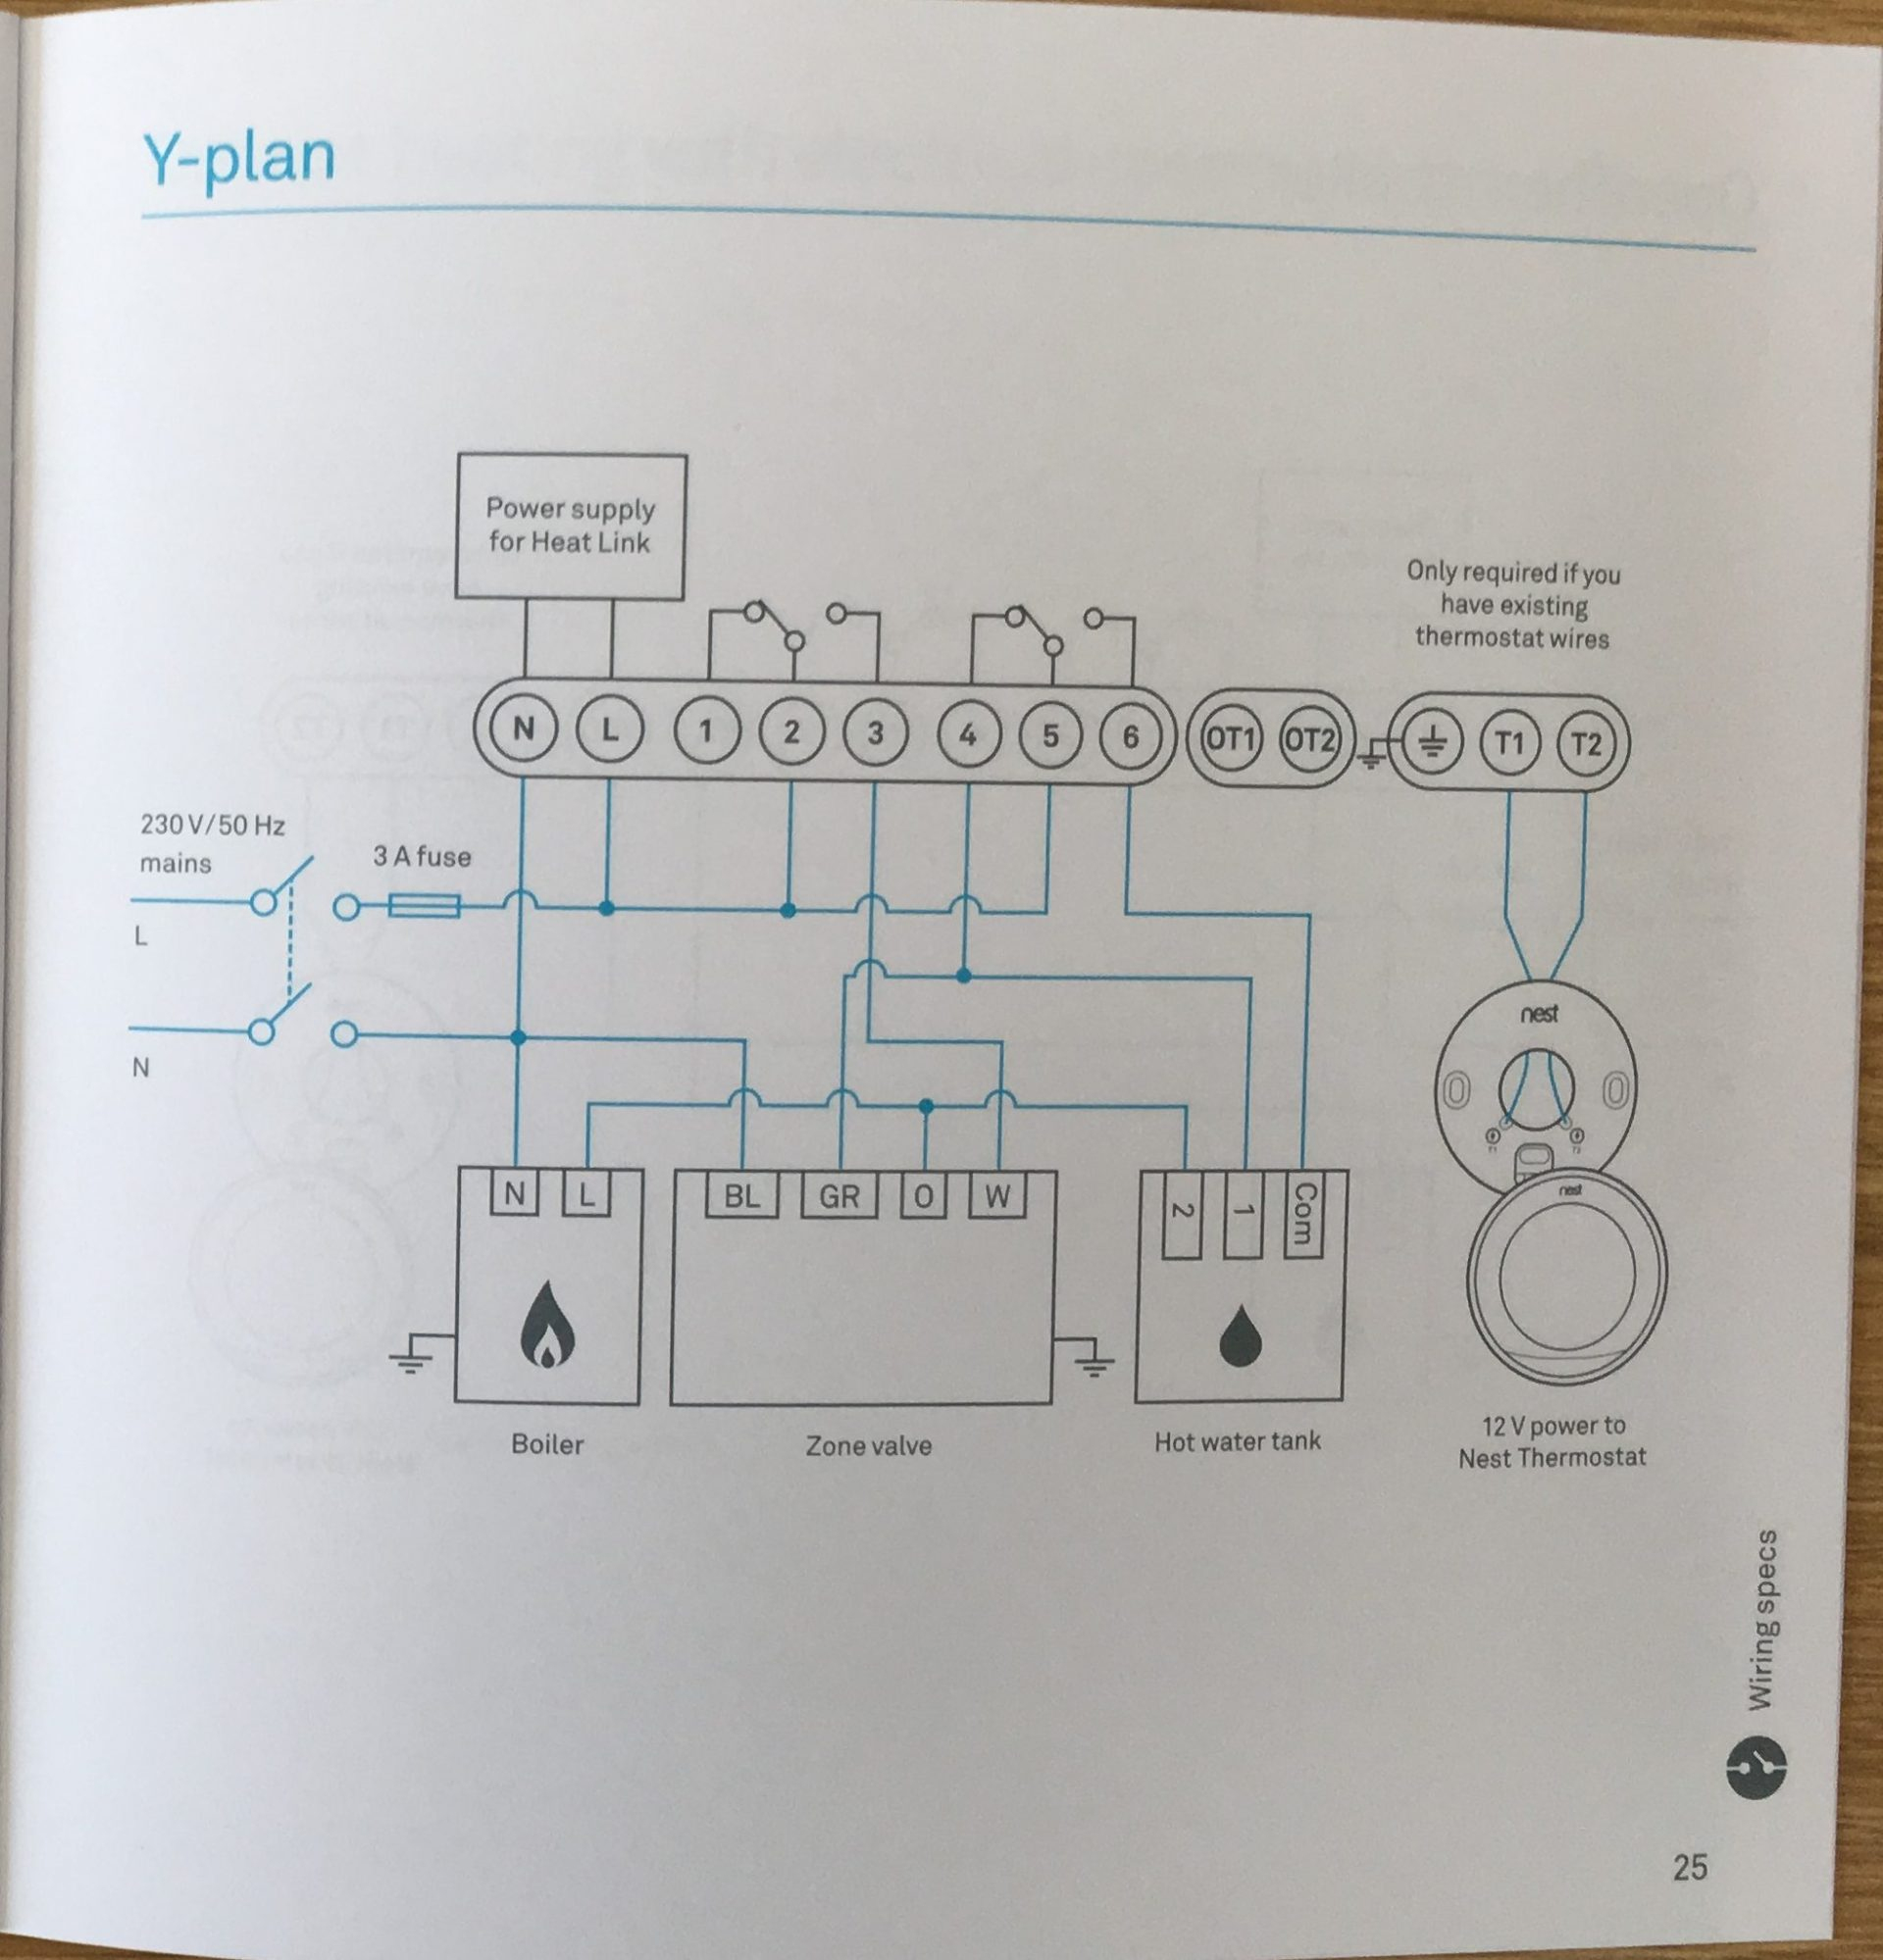 How To Install The Nest Learning Thermostat (3Rd Gen) In A Y-Plan - Nest Smart Thermostat Wiring Diagram